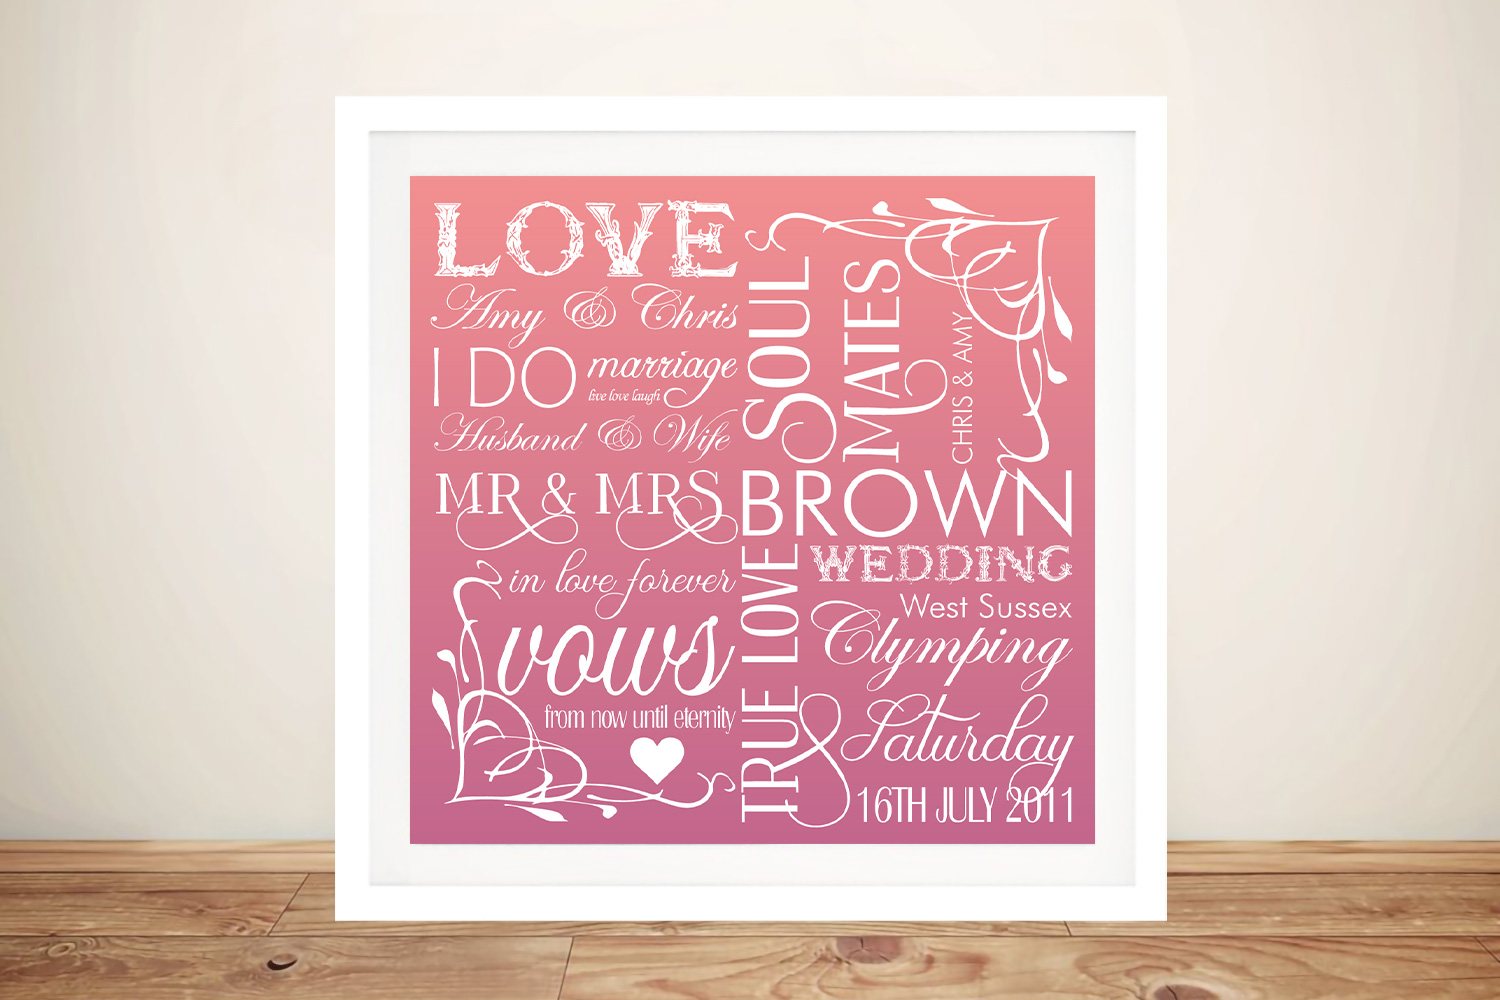 Wedding Day PersonalisedWord Art | Our Wedding Day